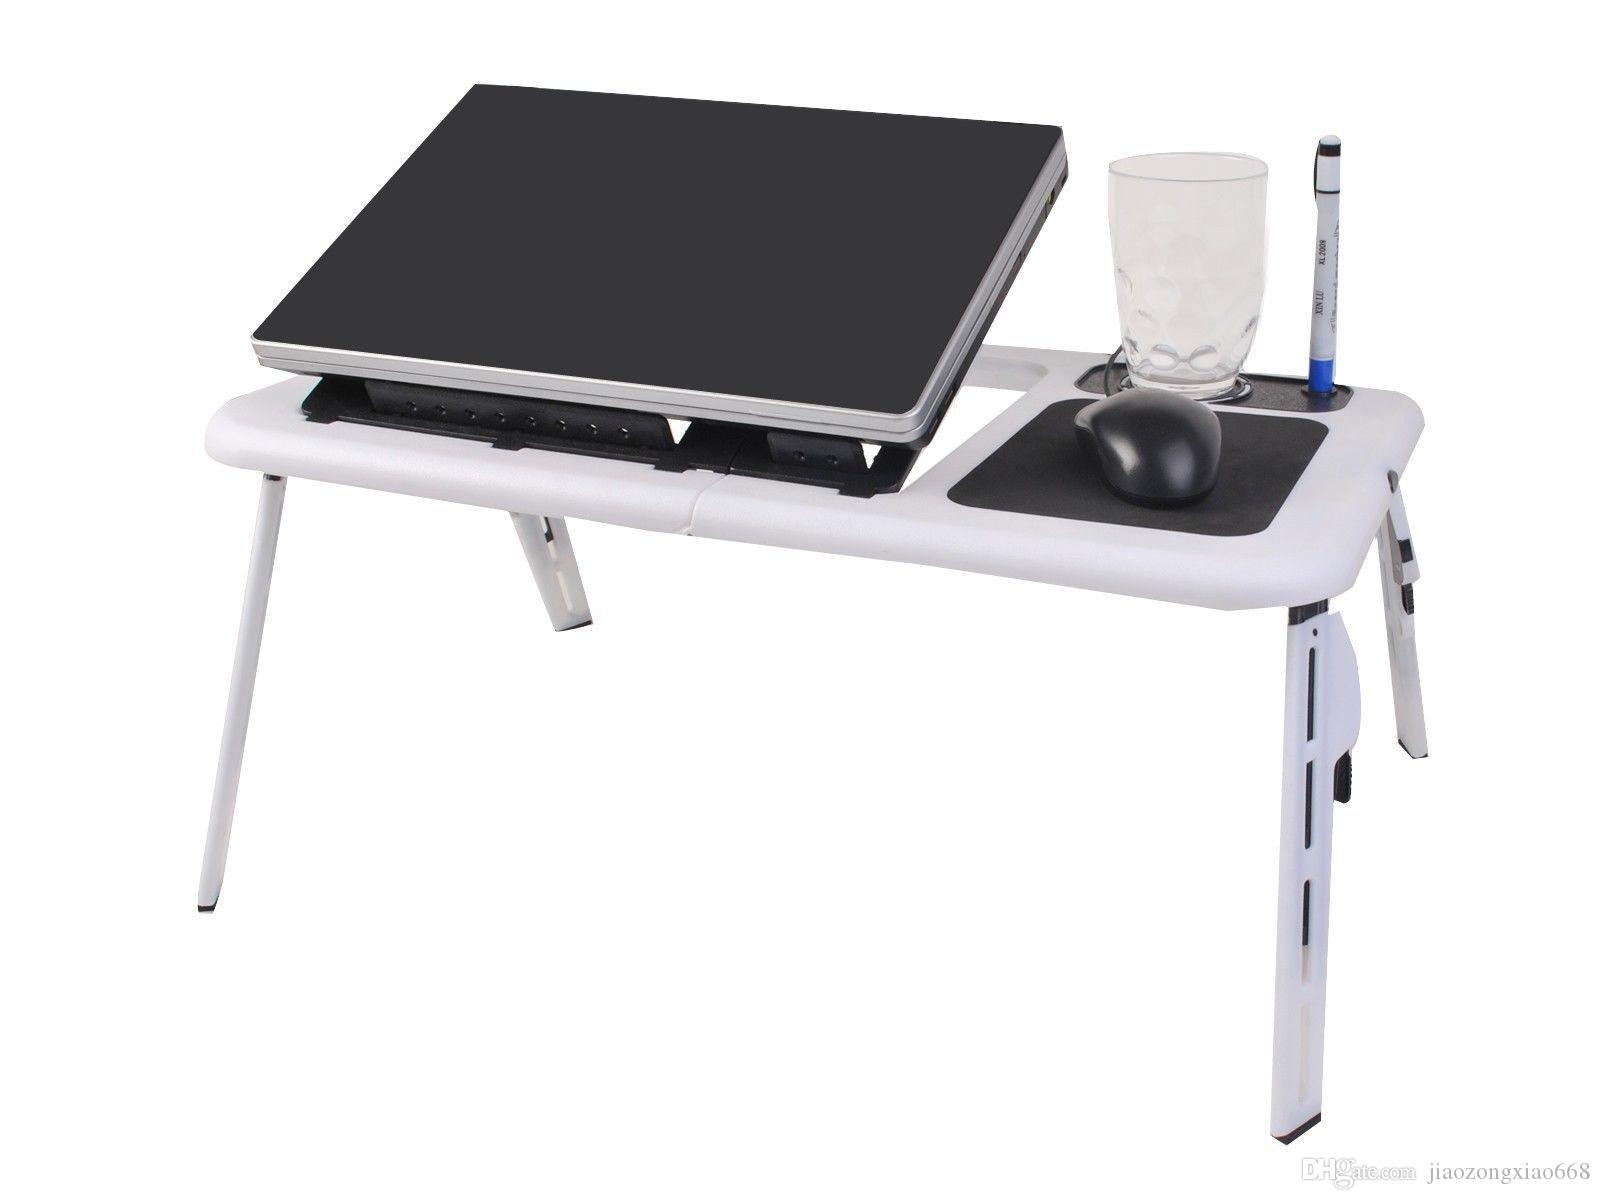 2018 Foldable Laptop Table Tray Desk W Cooling Fan Tablet Stand Bed Sofa Couch From Jiaozongxiao668 20 1 Dhgate Com